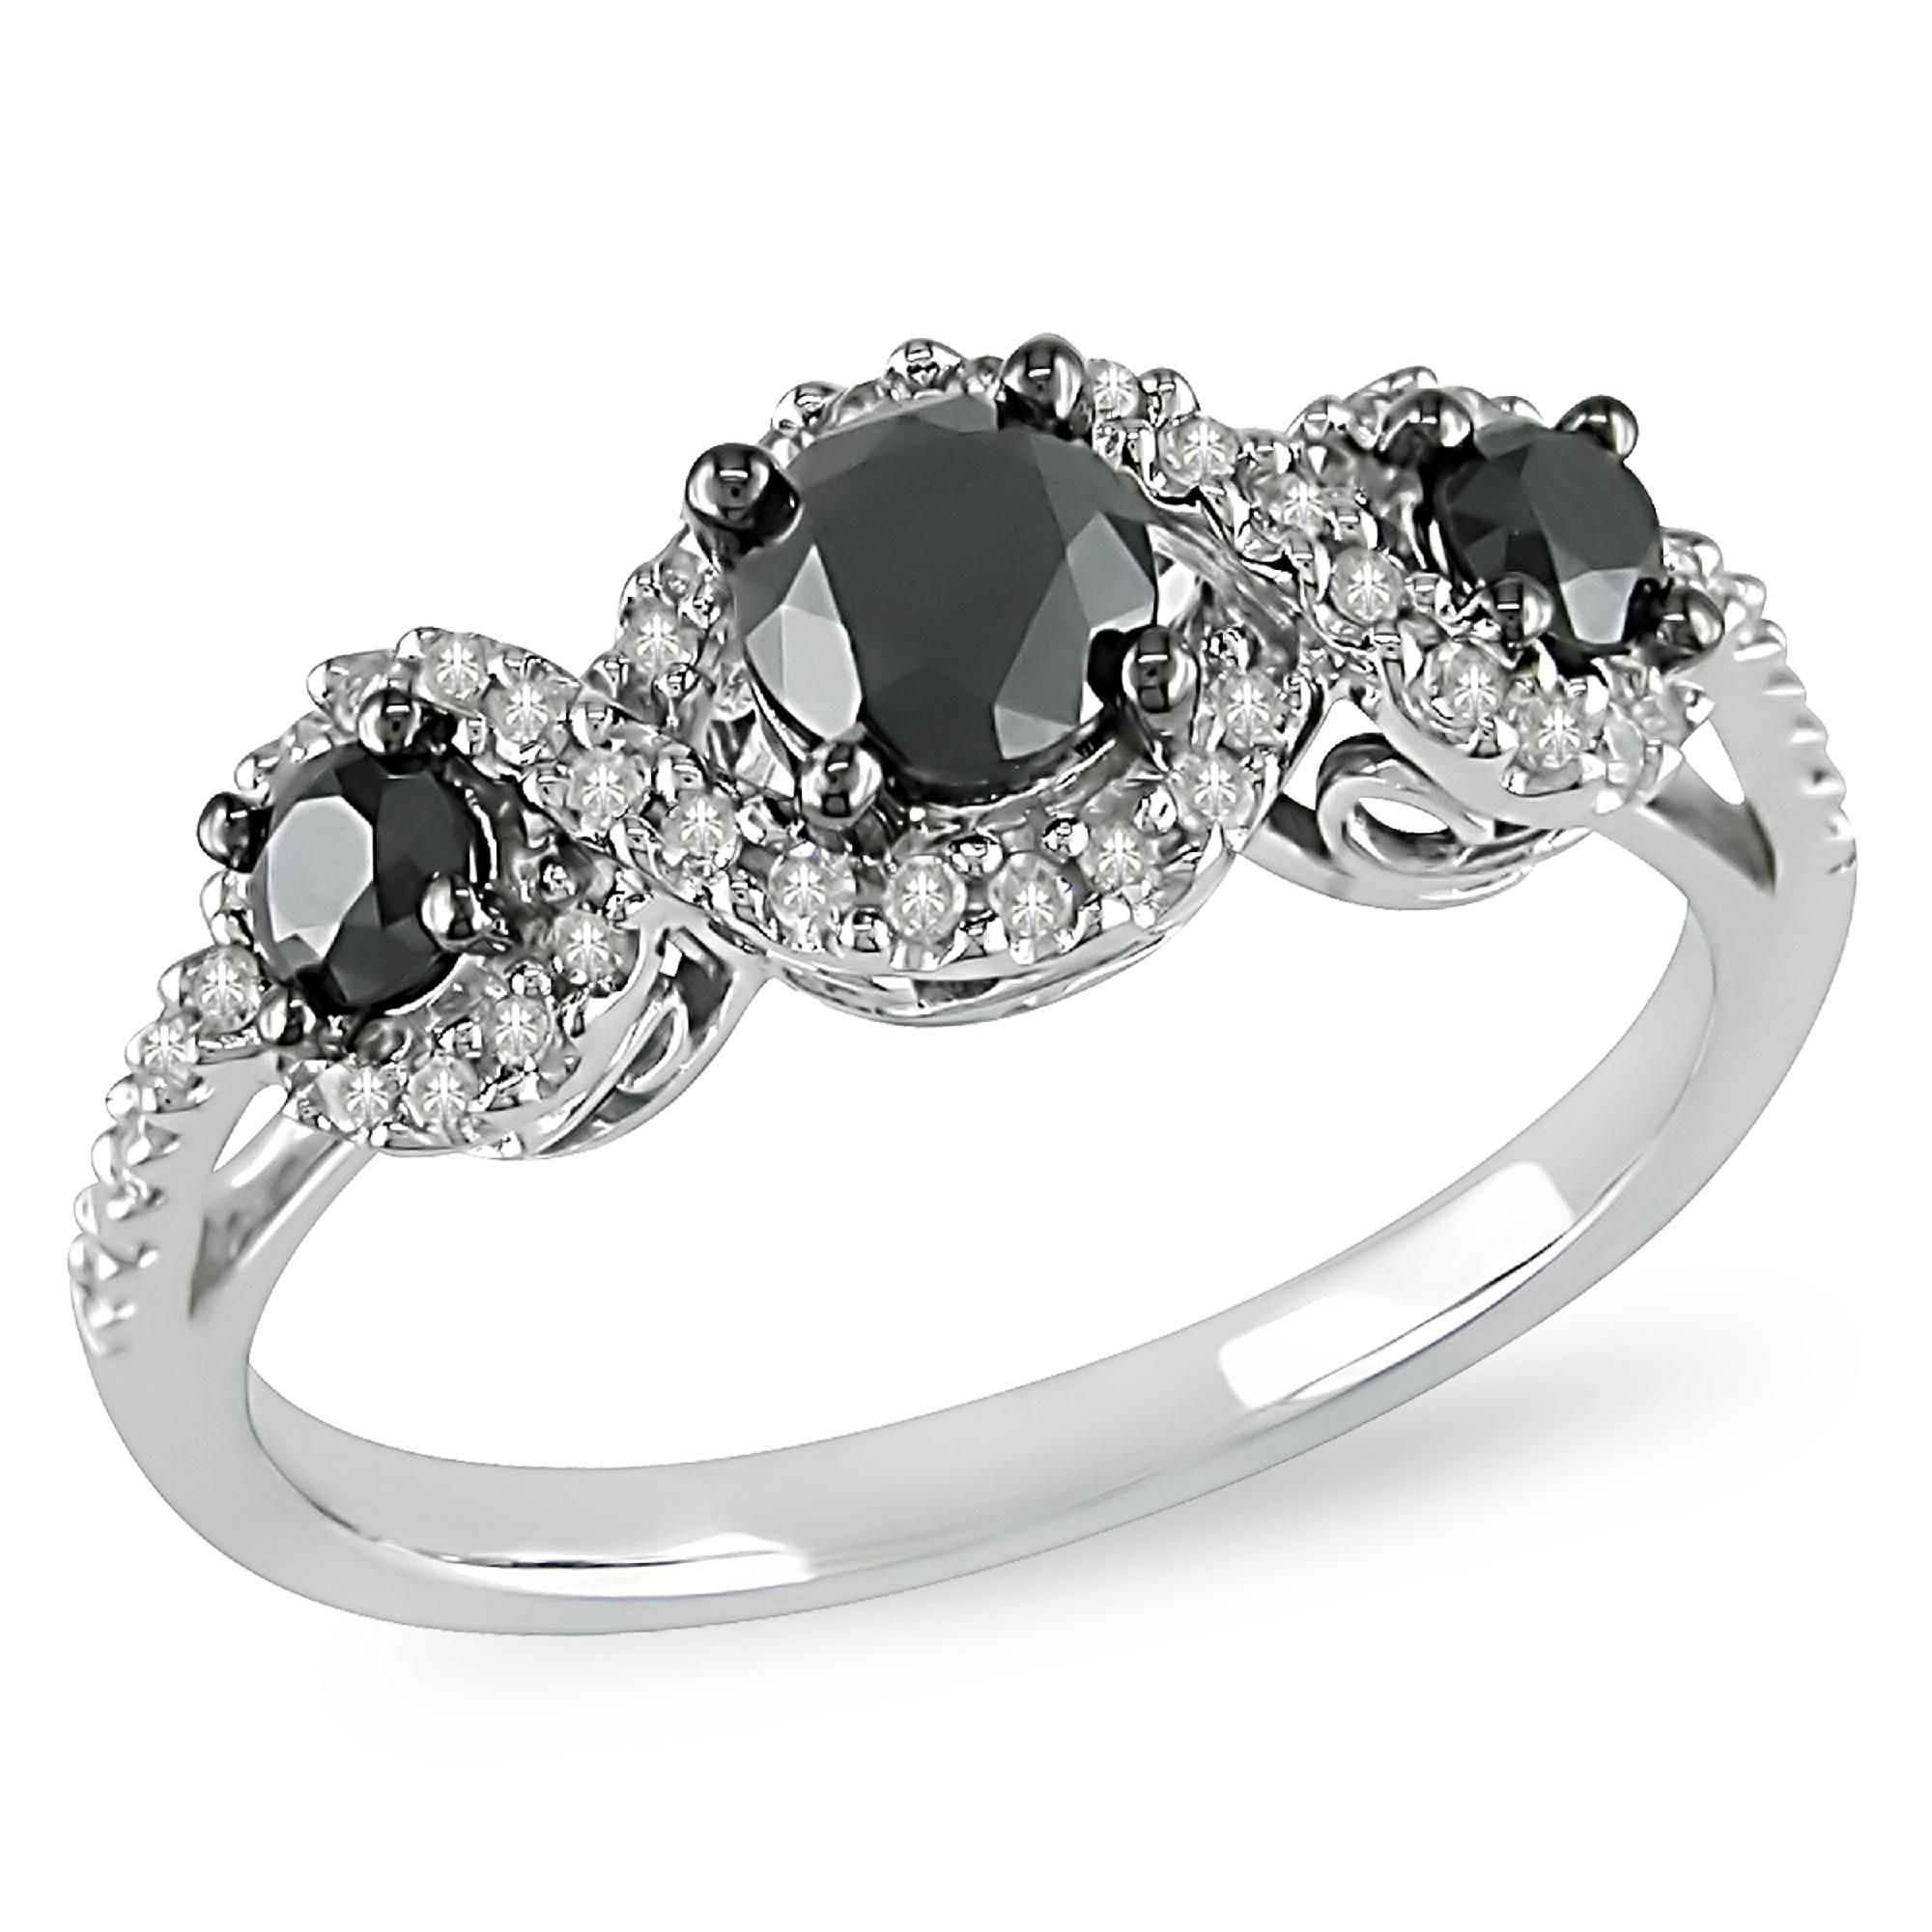 1 CTTW Black and White Diamond Three-Stone